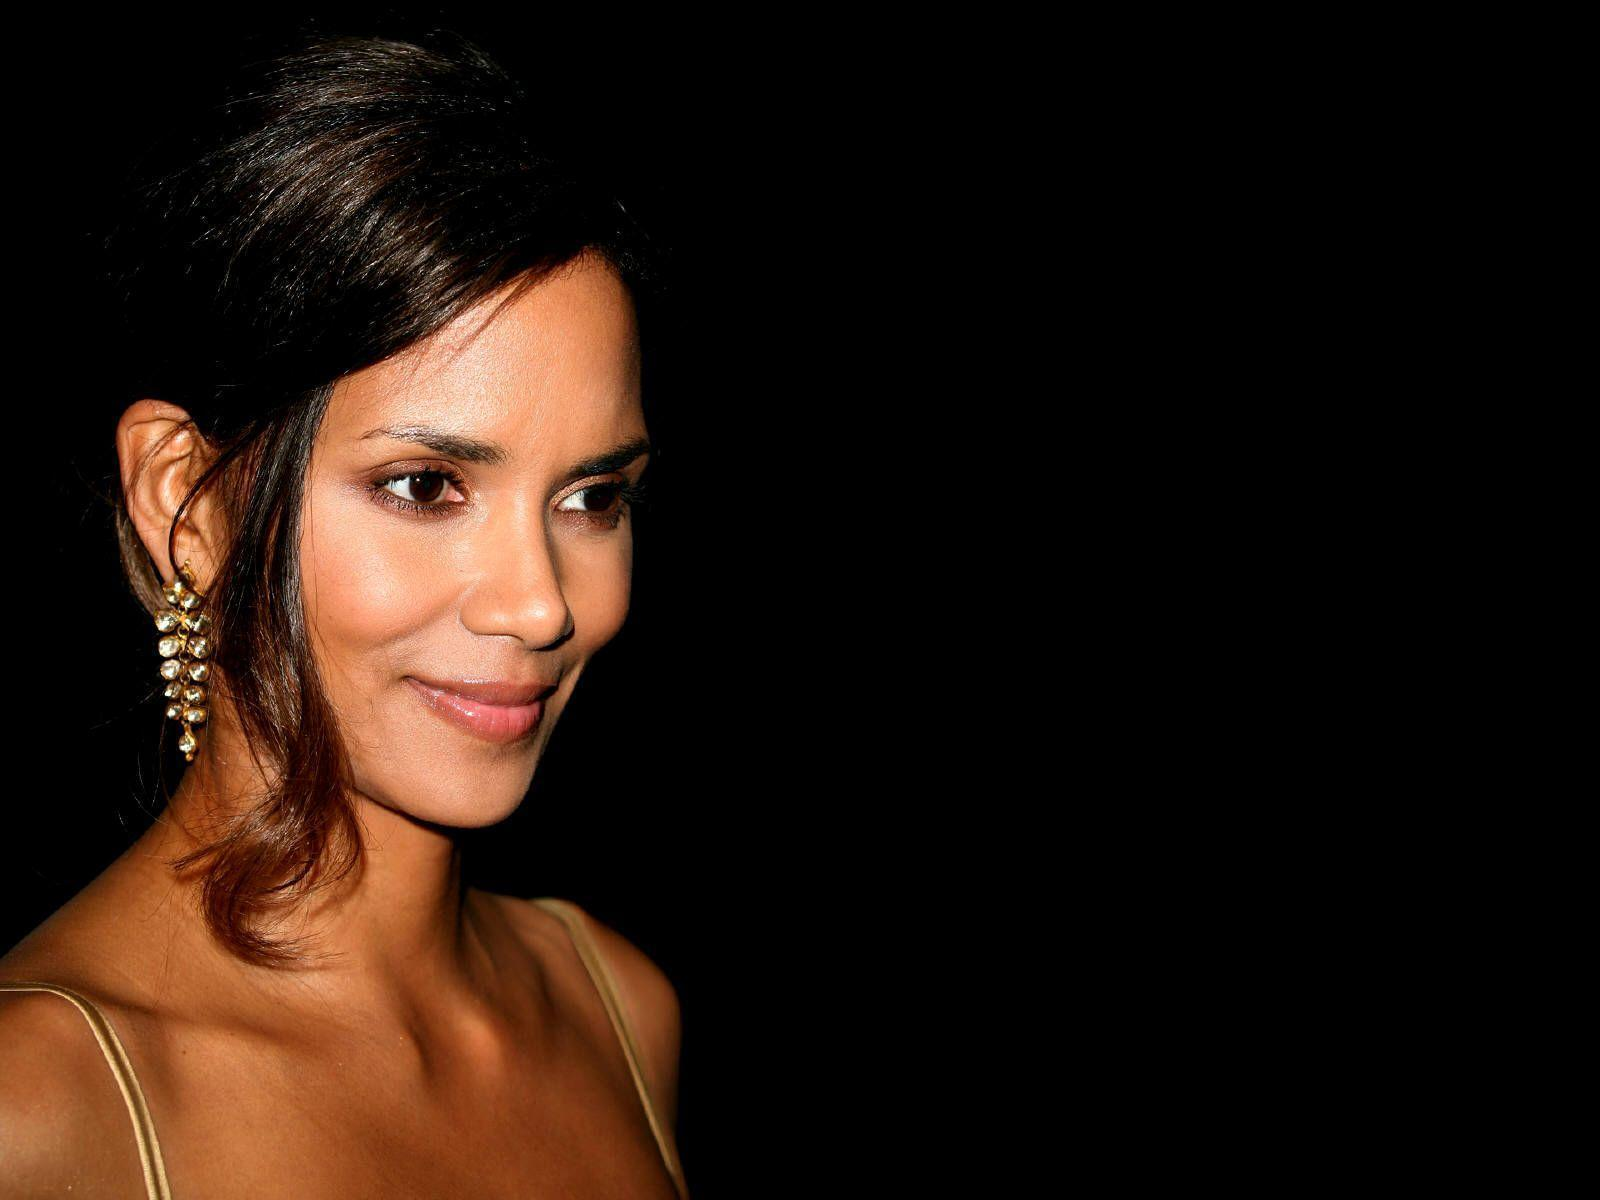 1600x1200 - Halle Berry Wallpapers 3